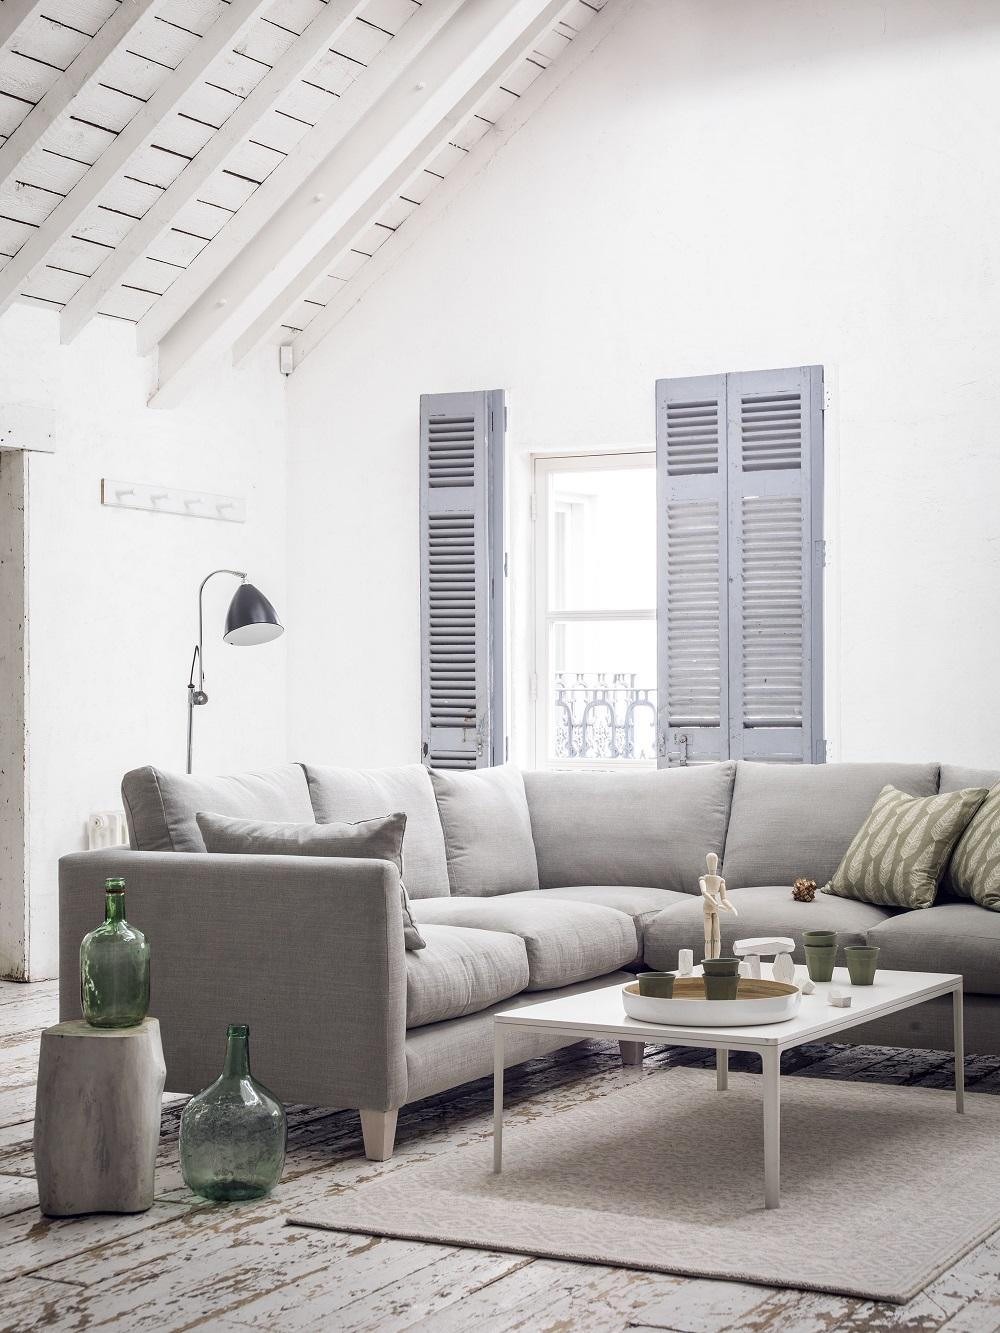 Sofa | 3 Is The Magic Number: Our New Sofa Styles Regarding Emily Sofas (View 11 of 20)